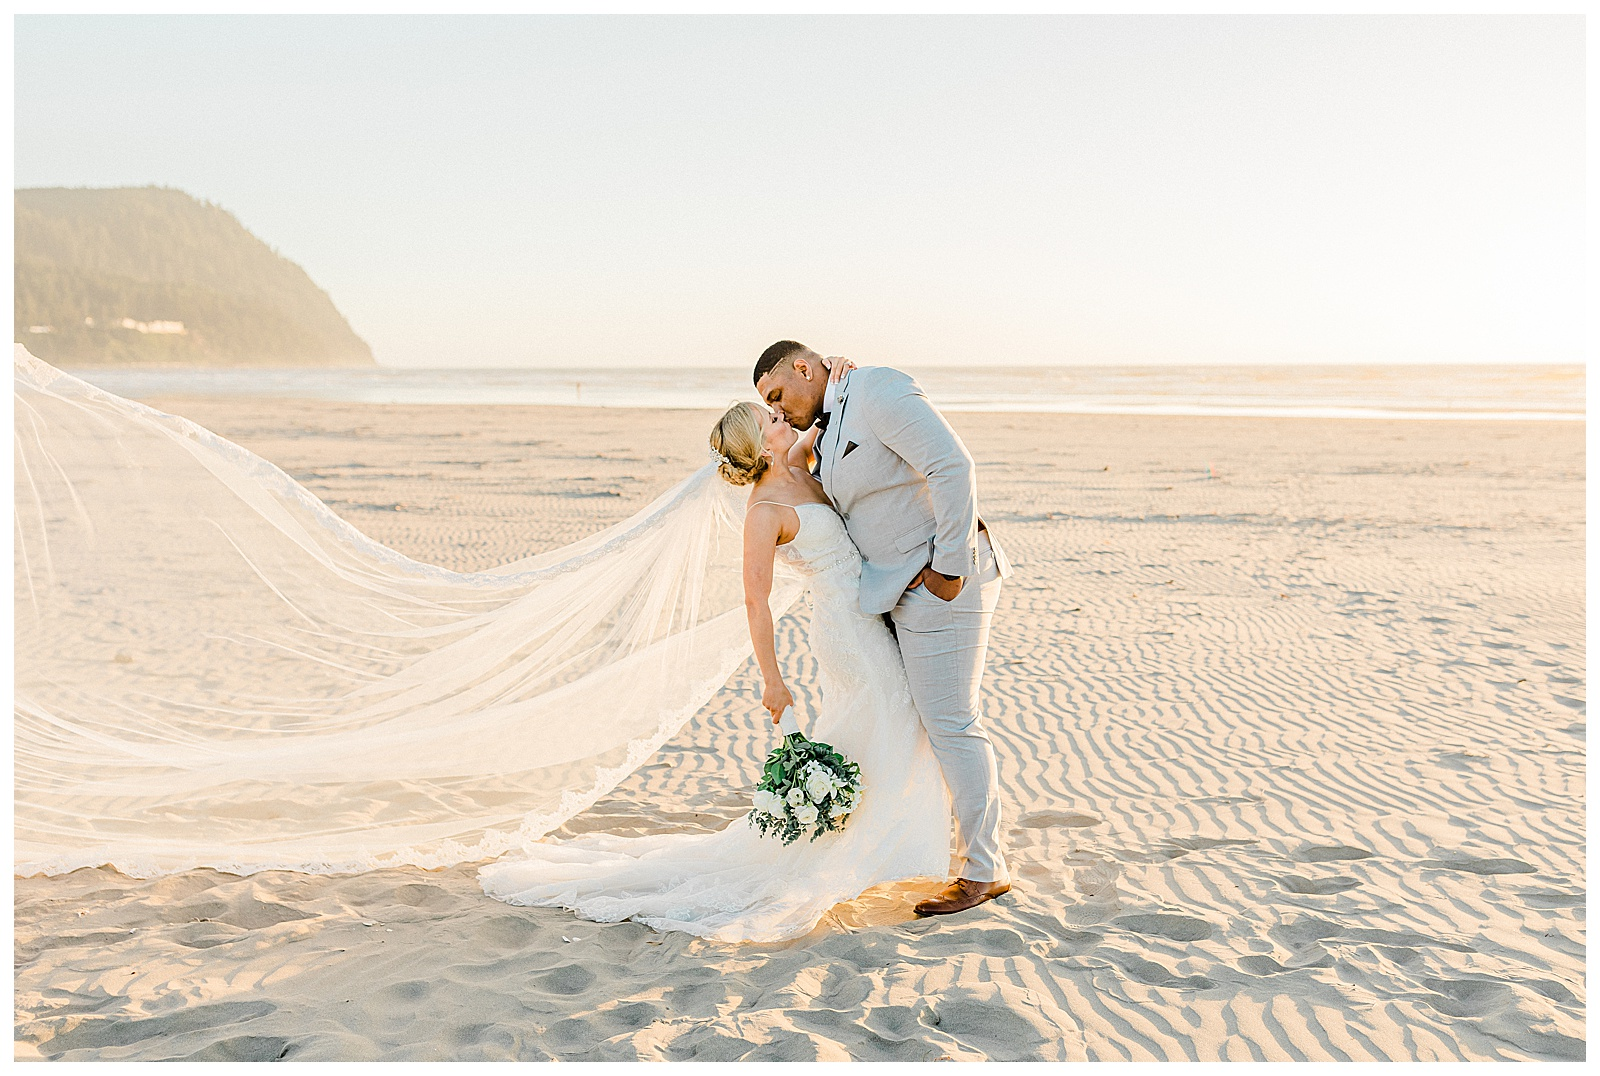 A bride and groom kiss at sunset on the beach as her veil flows behind her